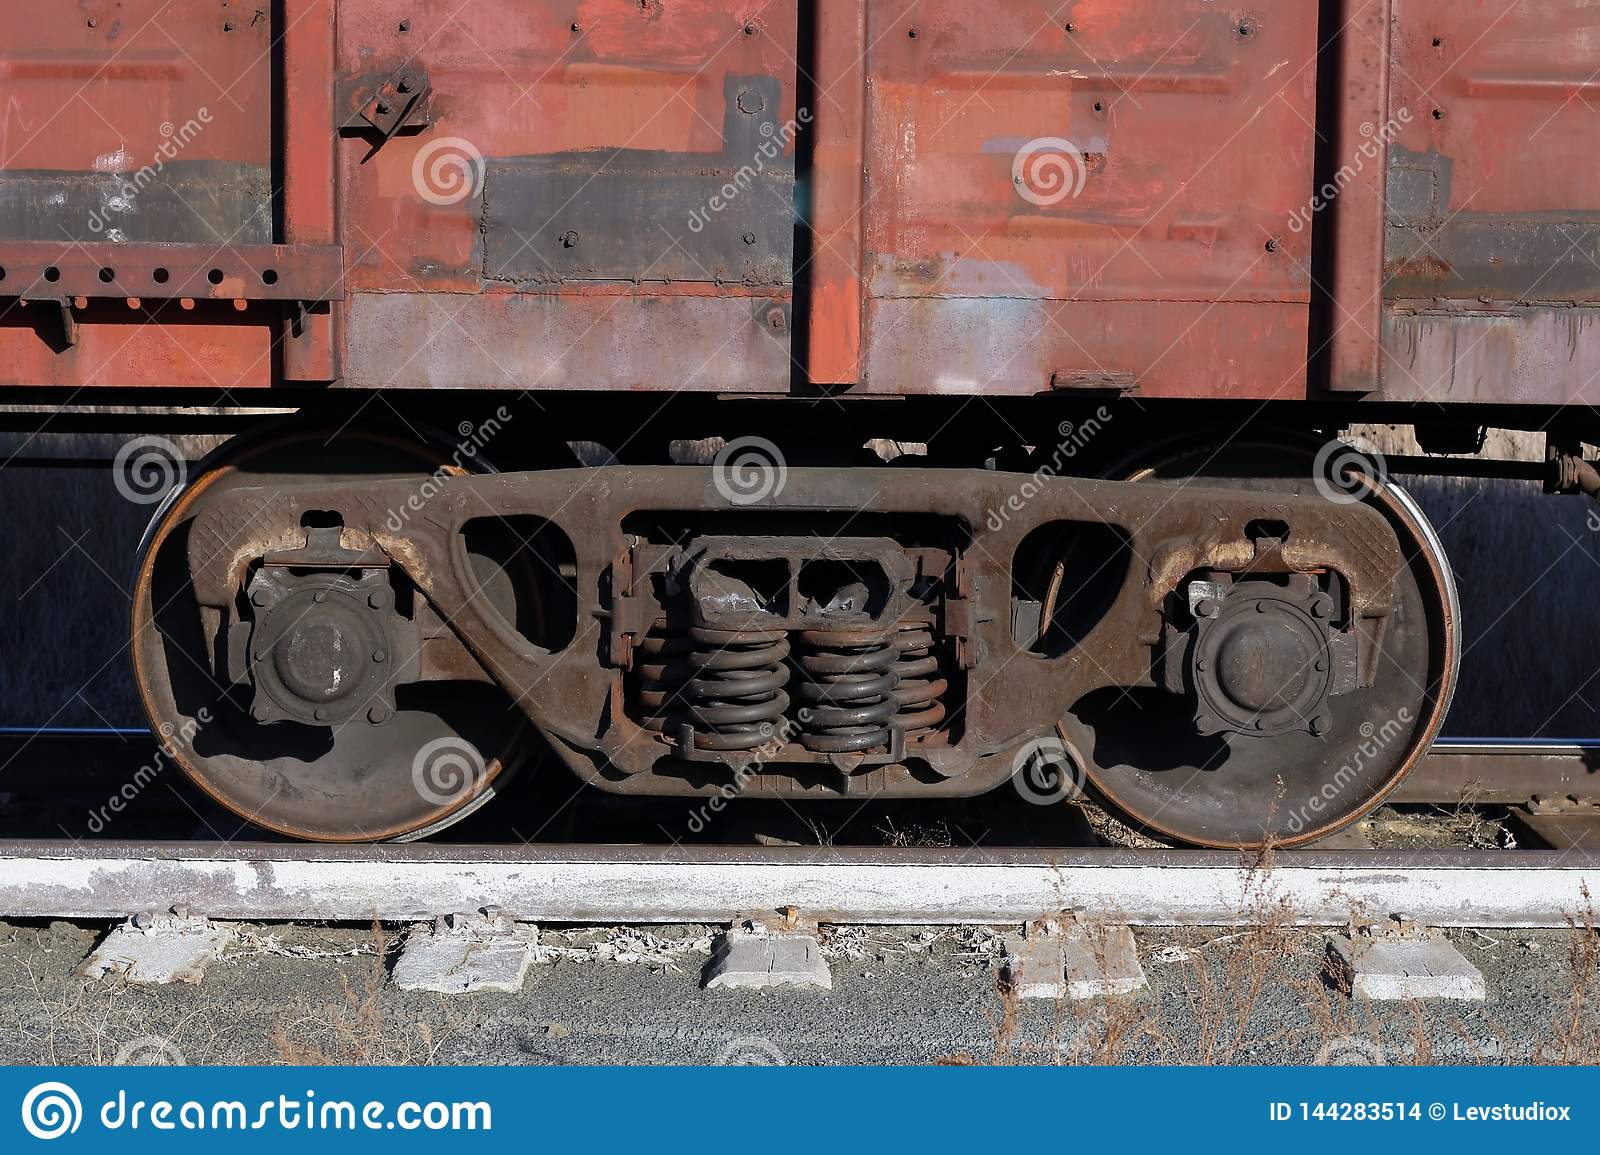 Wagon of an old rusty freight train stands on the rails